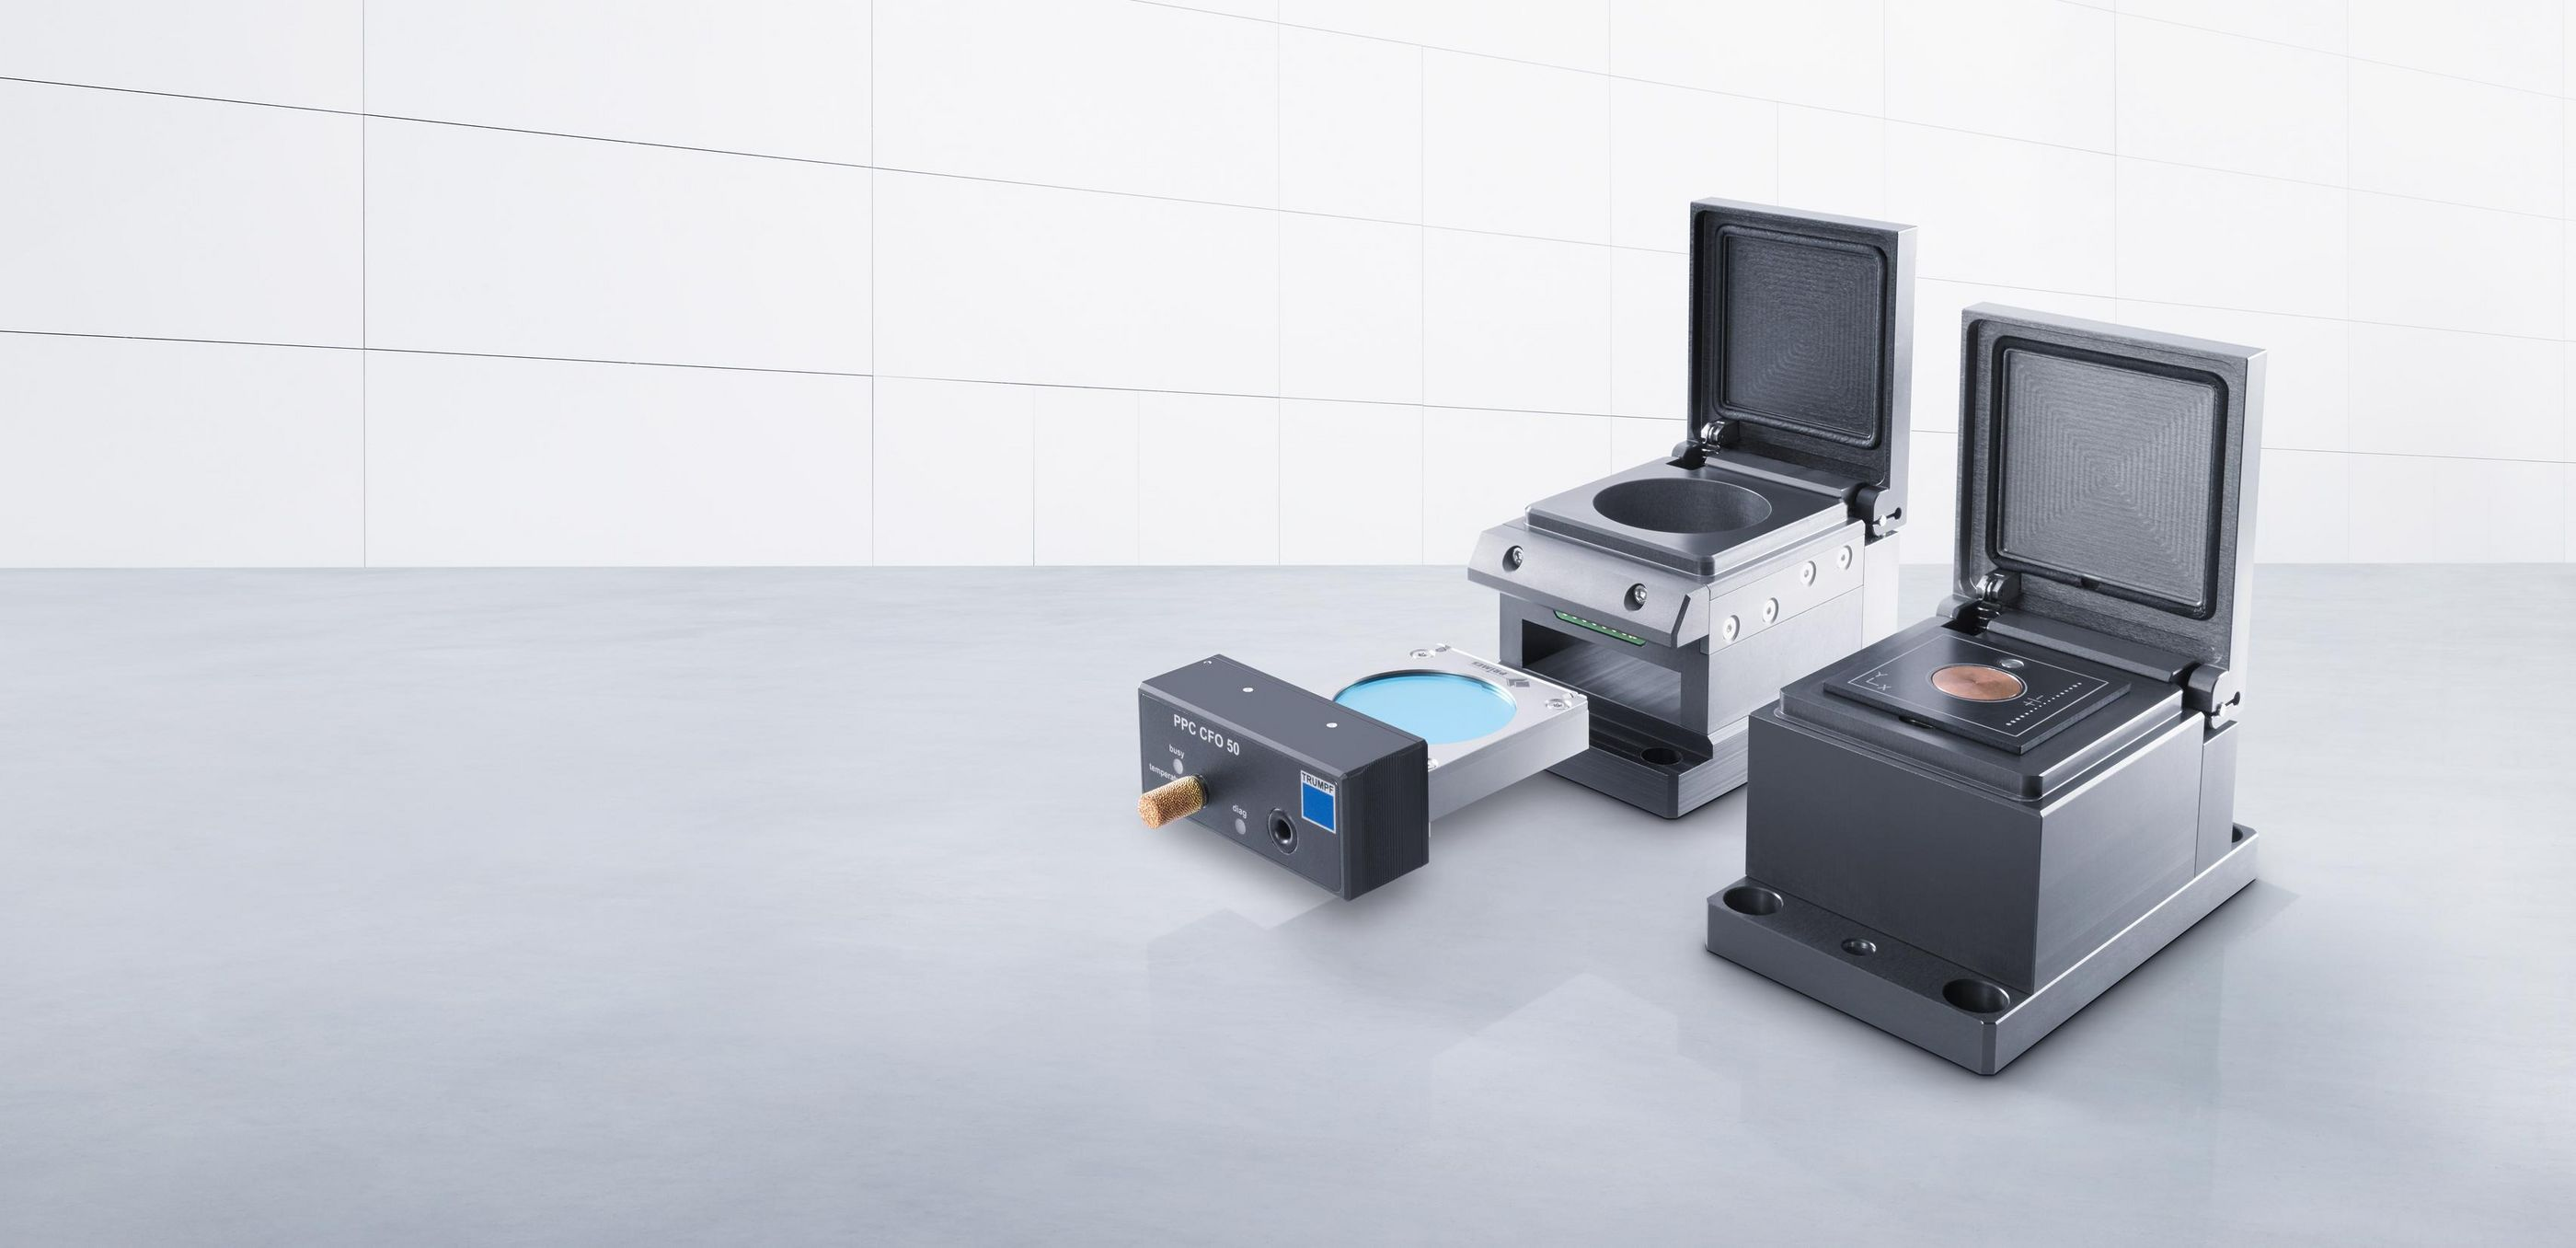 Quick and reliable calibration with the CalibrationLine from TRUMPF